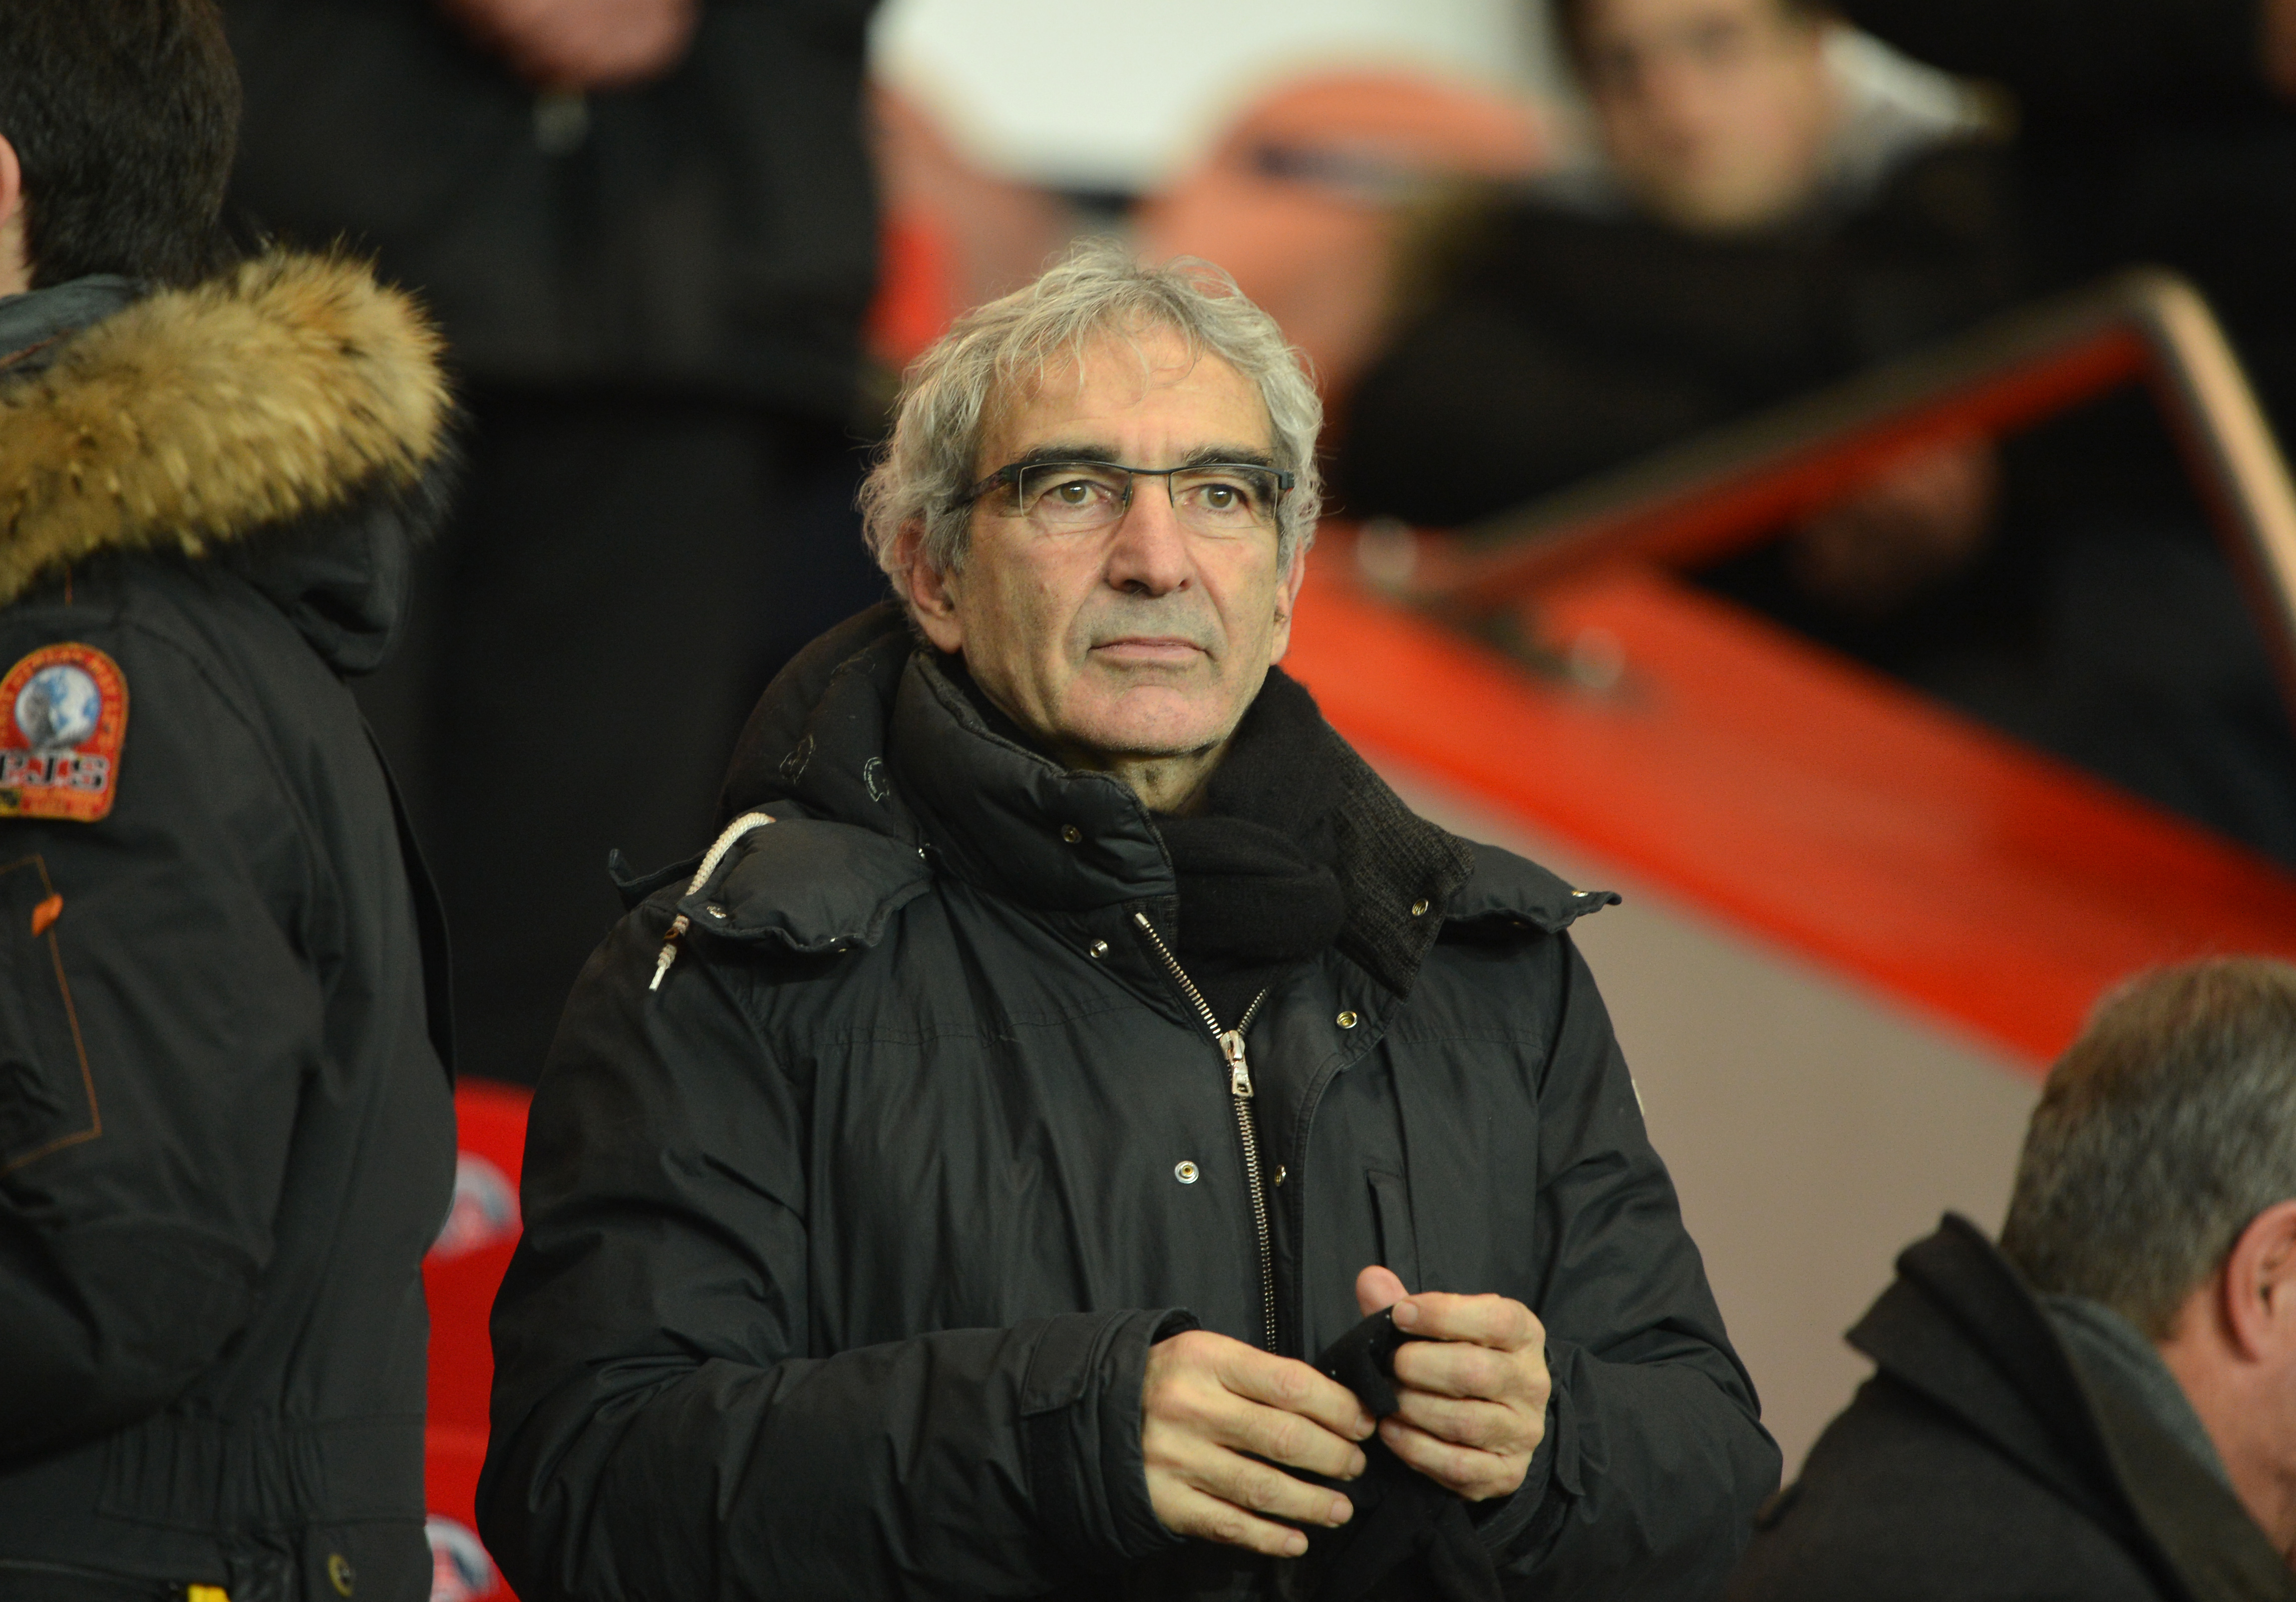 Former French national football team head coach Raymond Domenech attends the French L1 football match between Paris Saint Germain vs Lille on January 27, 2013 at the Parc-des-Princes stadium in Paris. AFP PHOTO / MIGUEL MEDINA        (Photo credit should read MIGUEL MEDINA/AFP/Getty Images)